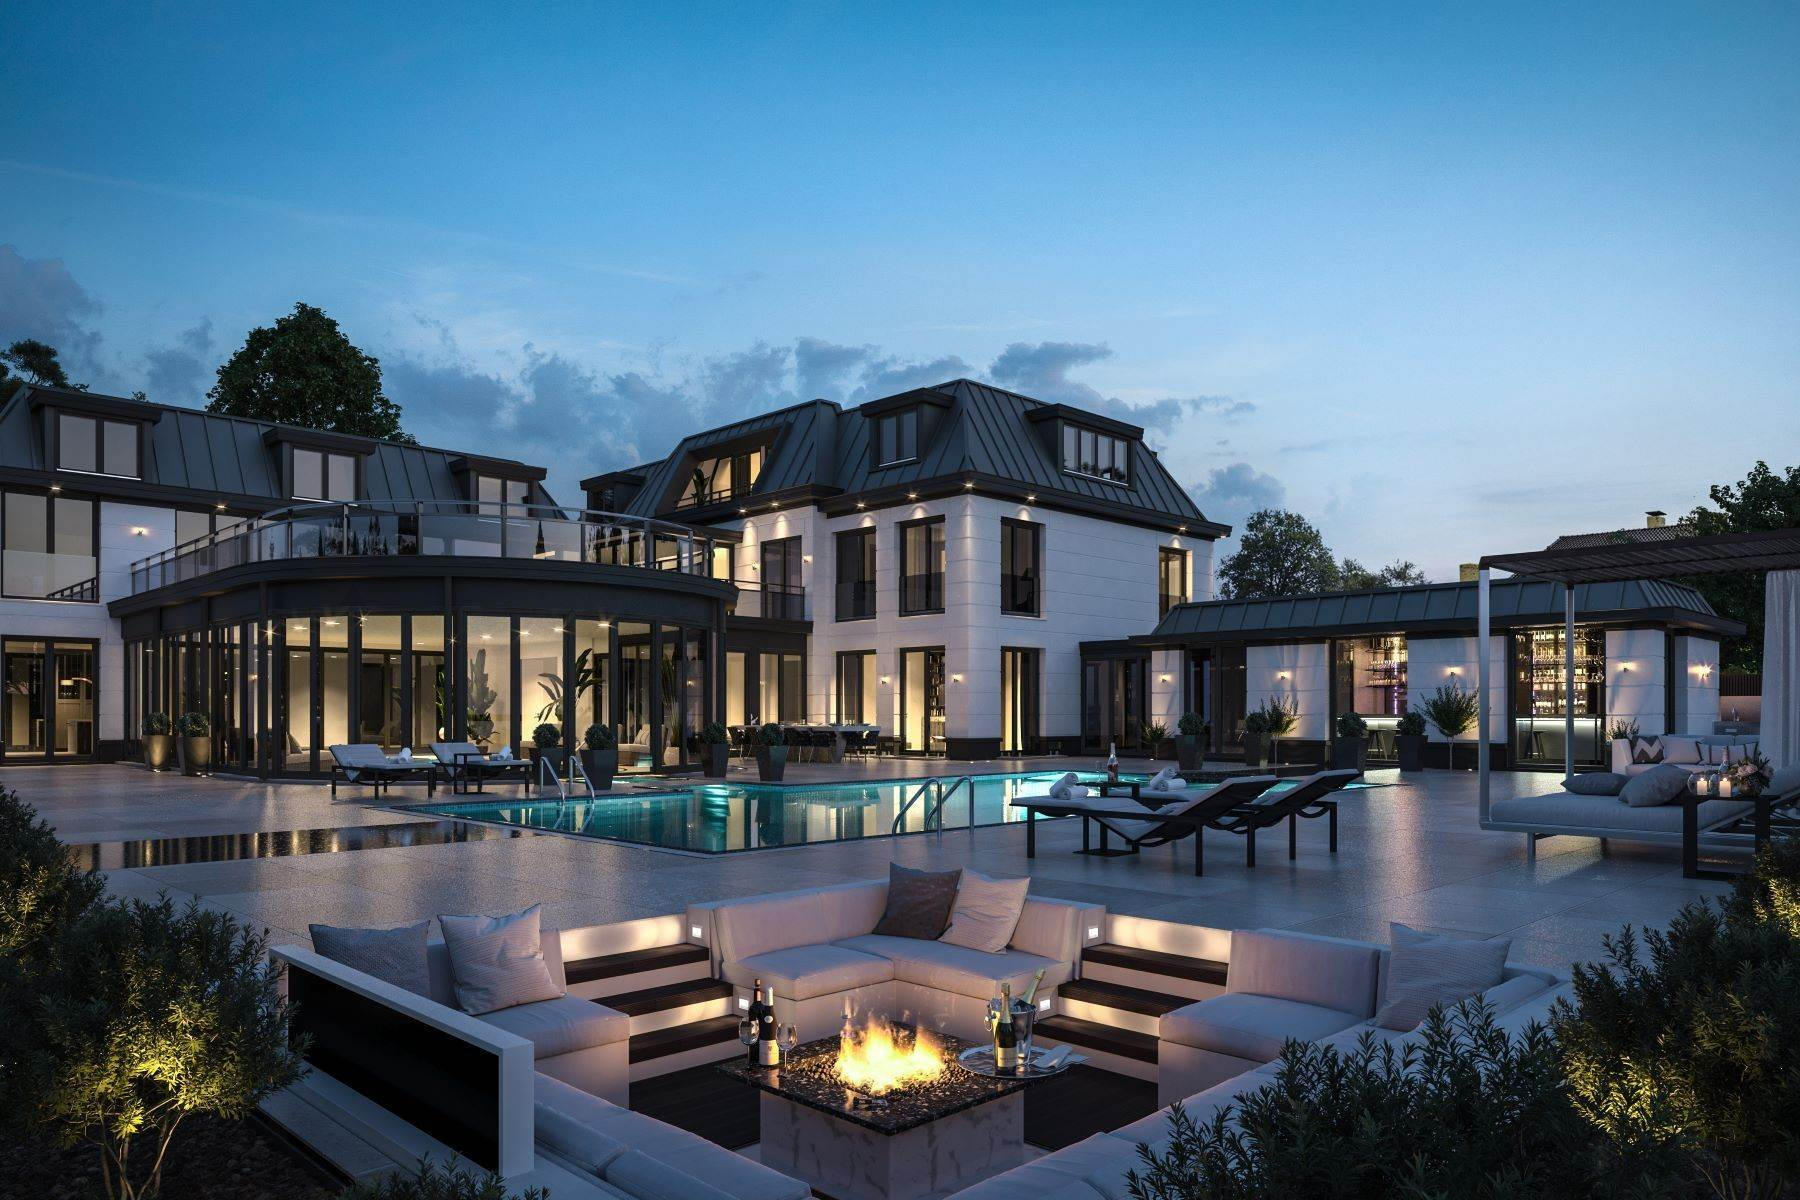 Other Residential Homes 为 销售 在 Ultimate new luxury palace on the lake - Vinkeveen Baambrugse Zuwe 141D Vinkeveen, Utrecht 3645 AE 荷兰